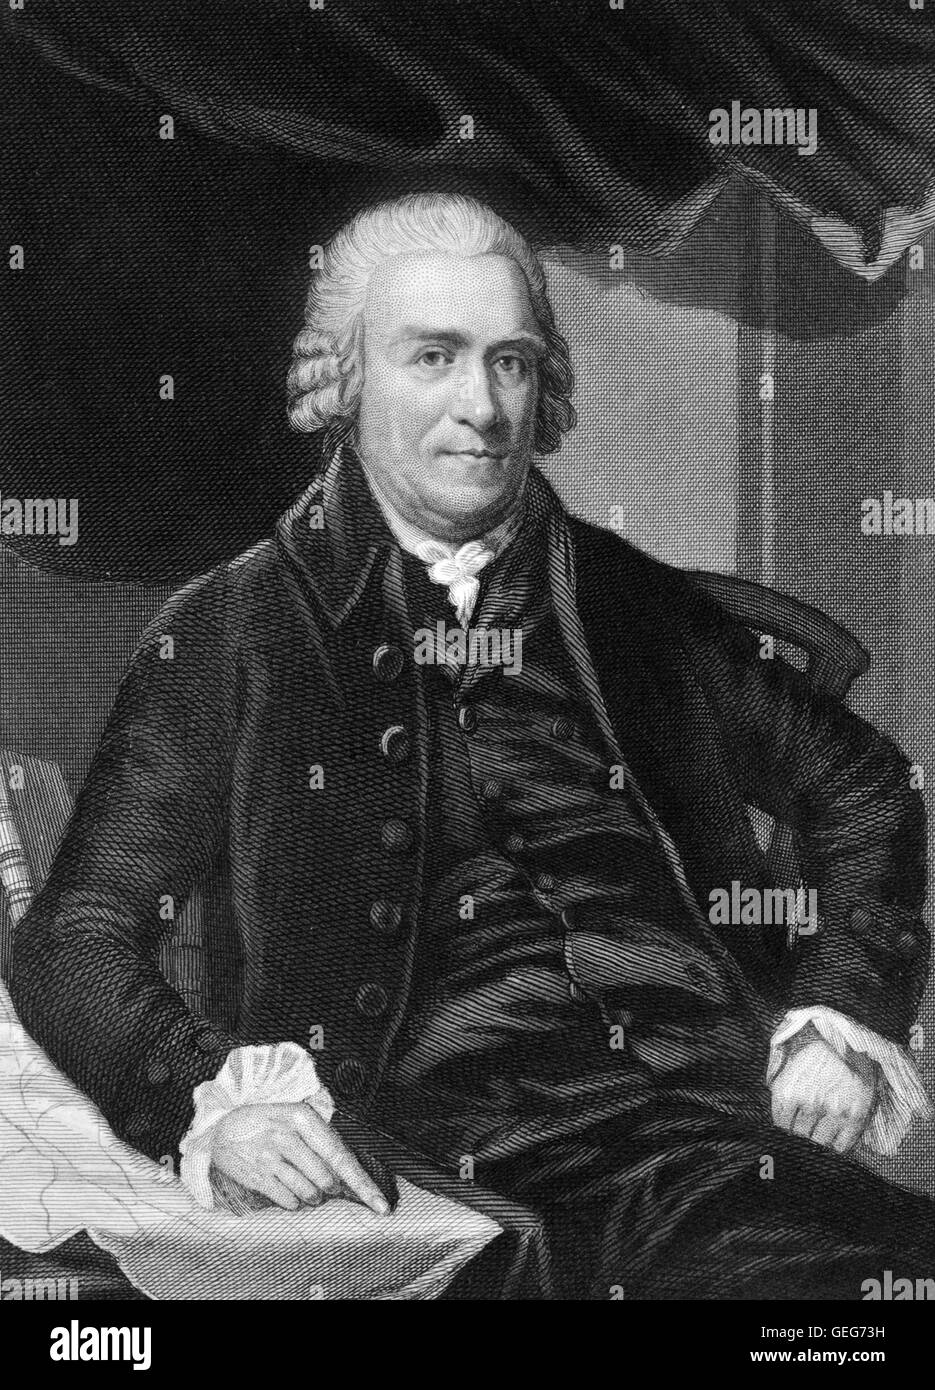 Samuel Adams. Portrait of the american statesman Samuel Adams, engraving by Henry Brian Hall from a painting by - Stock Image